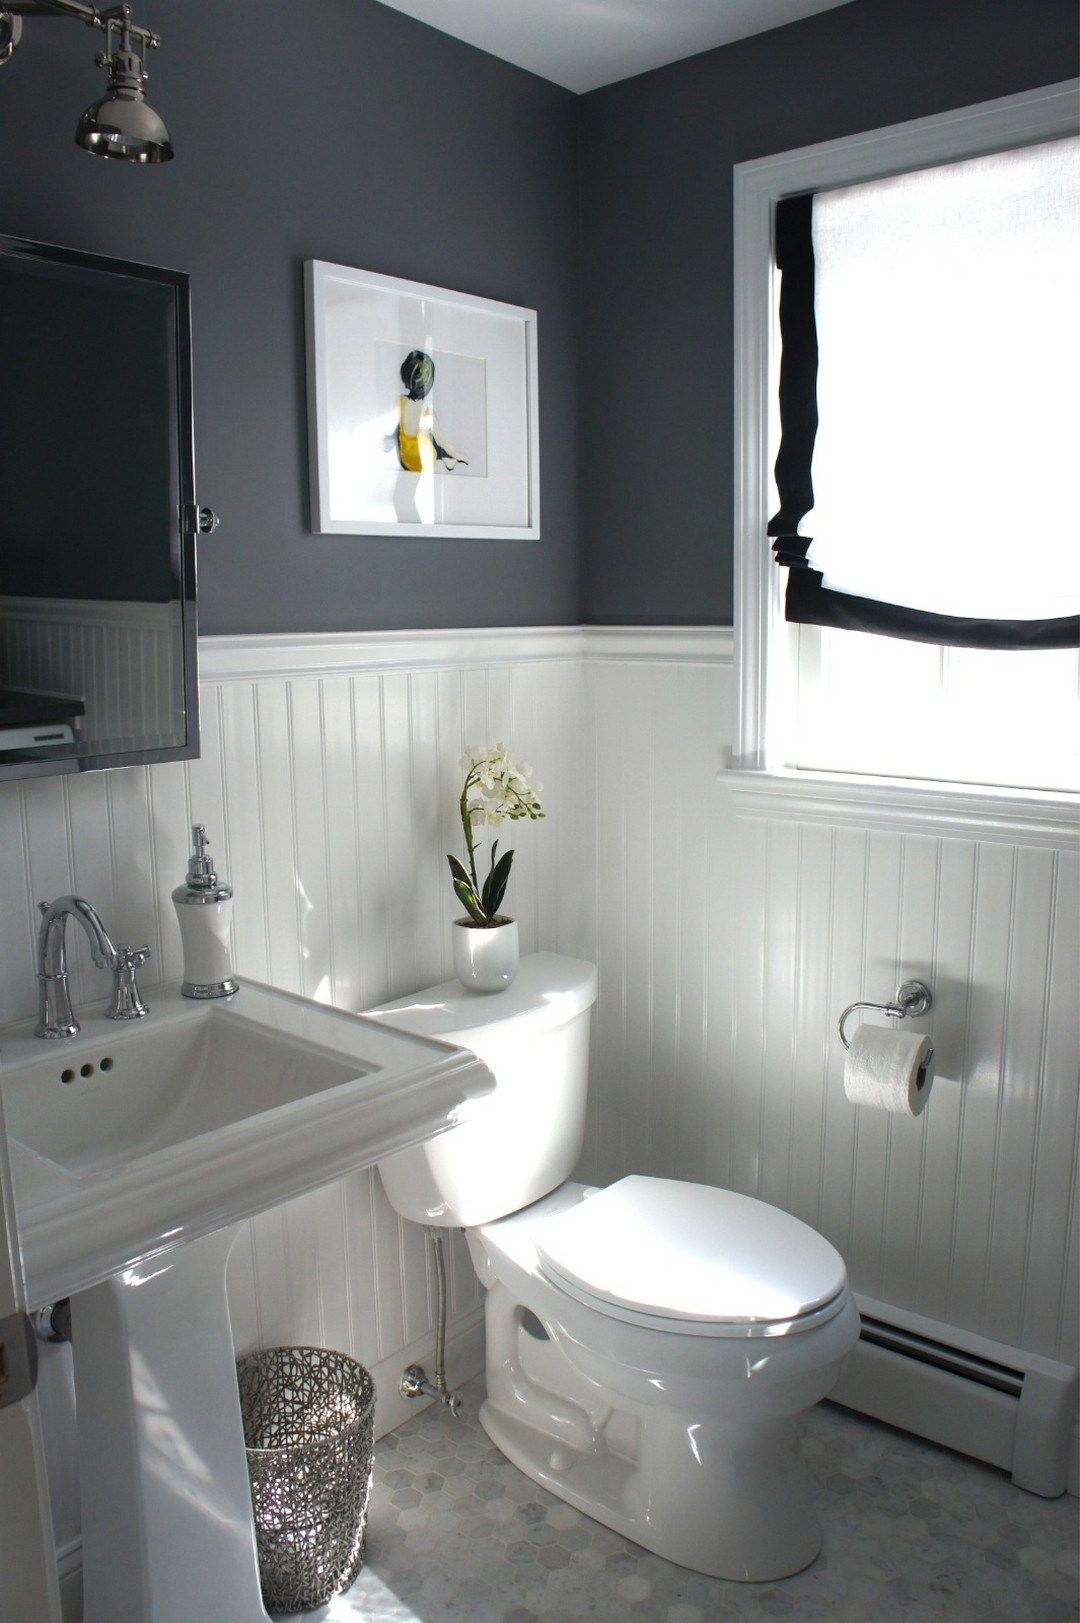 99 small master bathroom makeover ideas on a budget 48 for Small bathroom ideas hdb